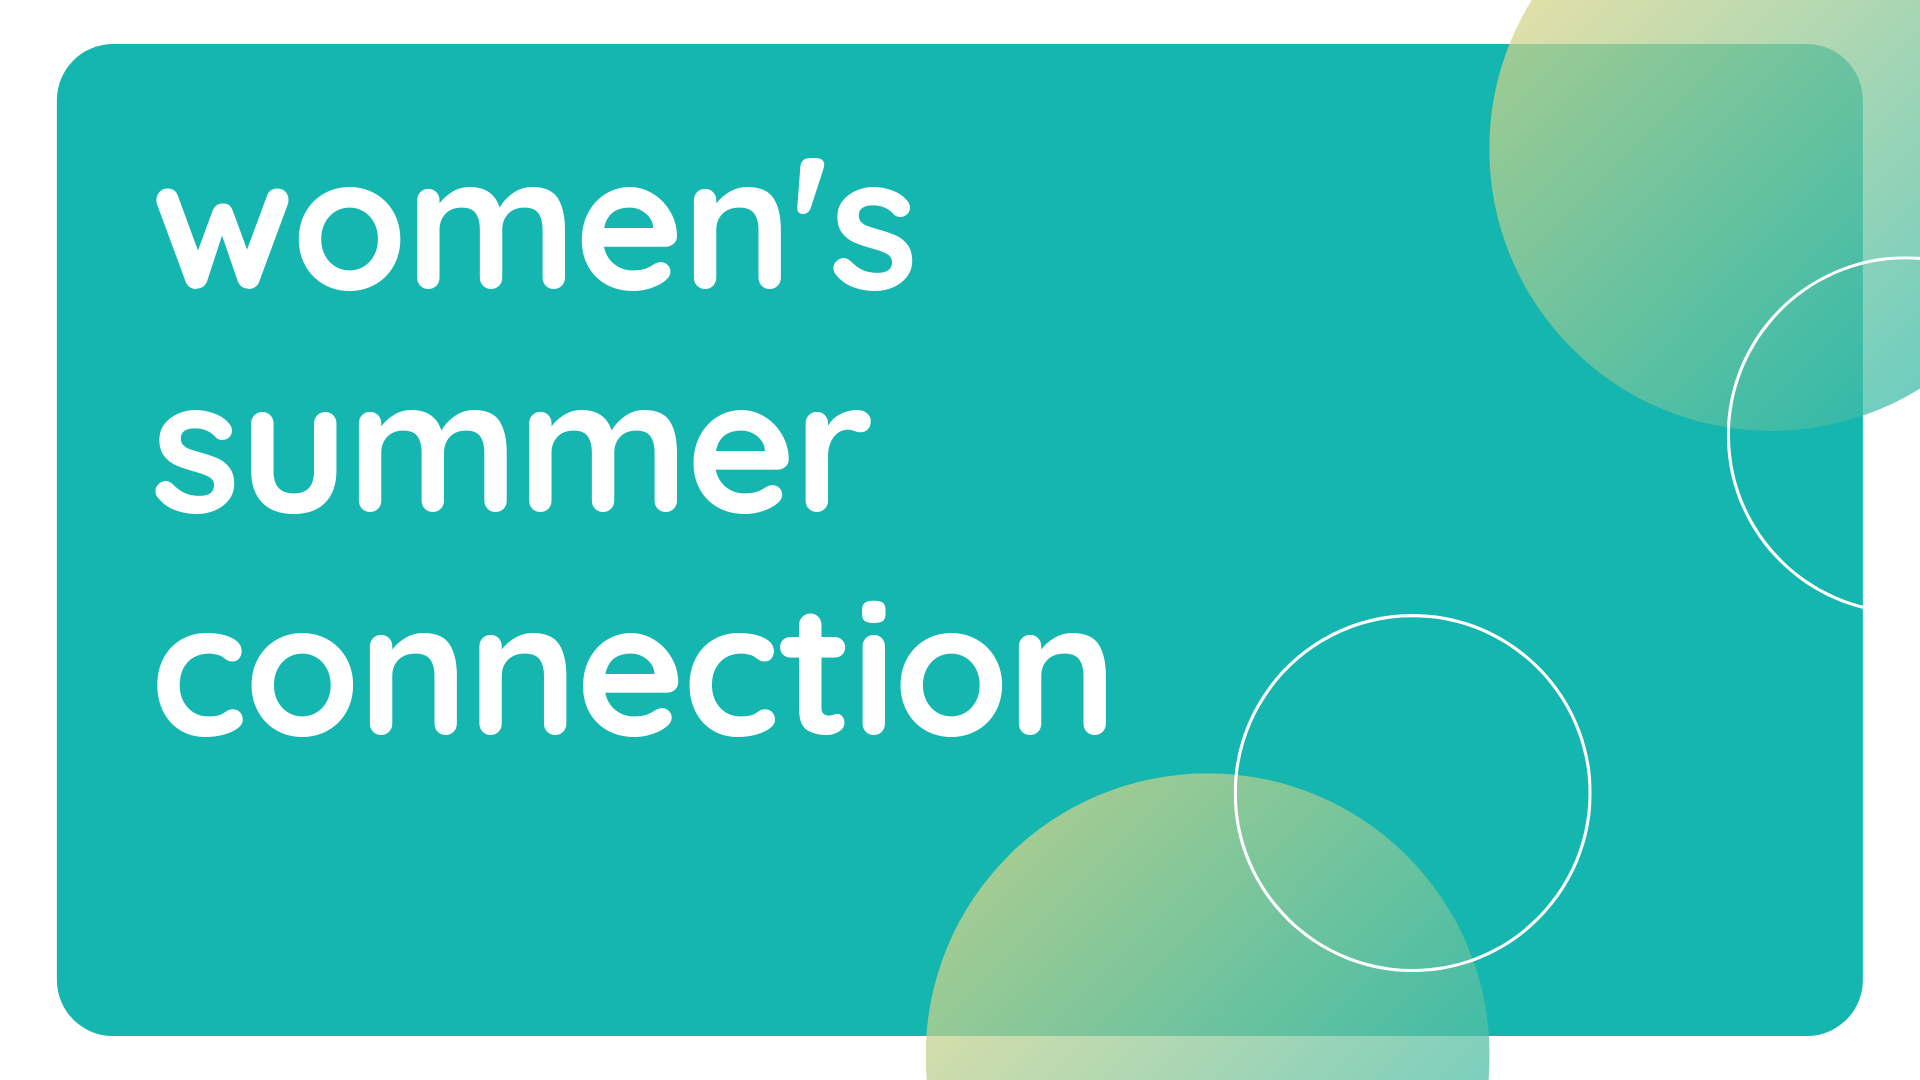 womens summer connection (1).png